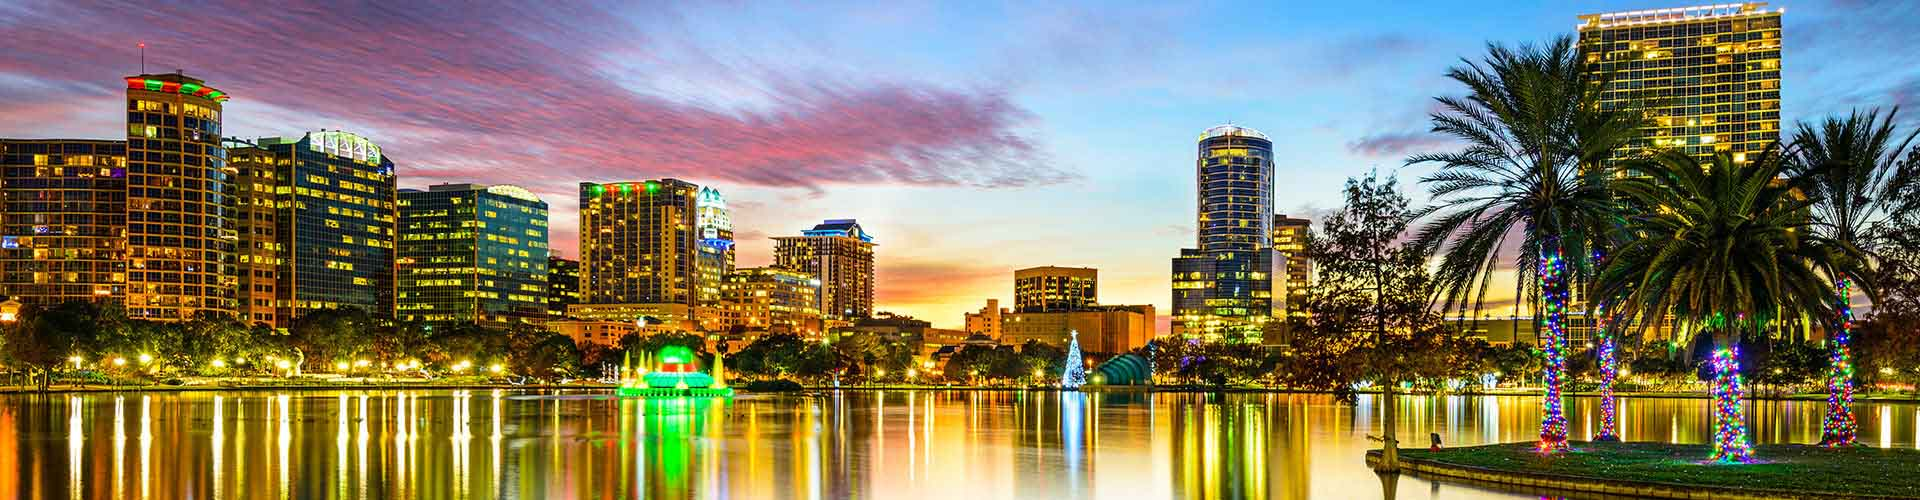 Orlando – Hostels in Orlando. Maps for Orlando, Photos and Reviews for each hostel in Orlando.